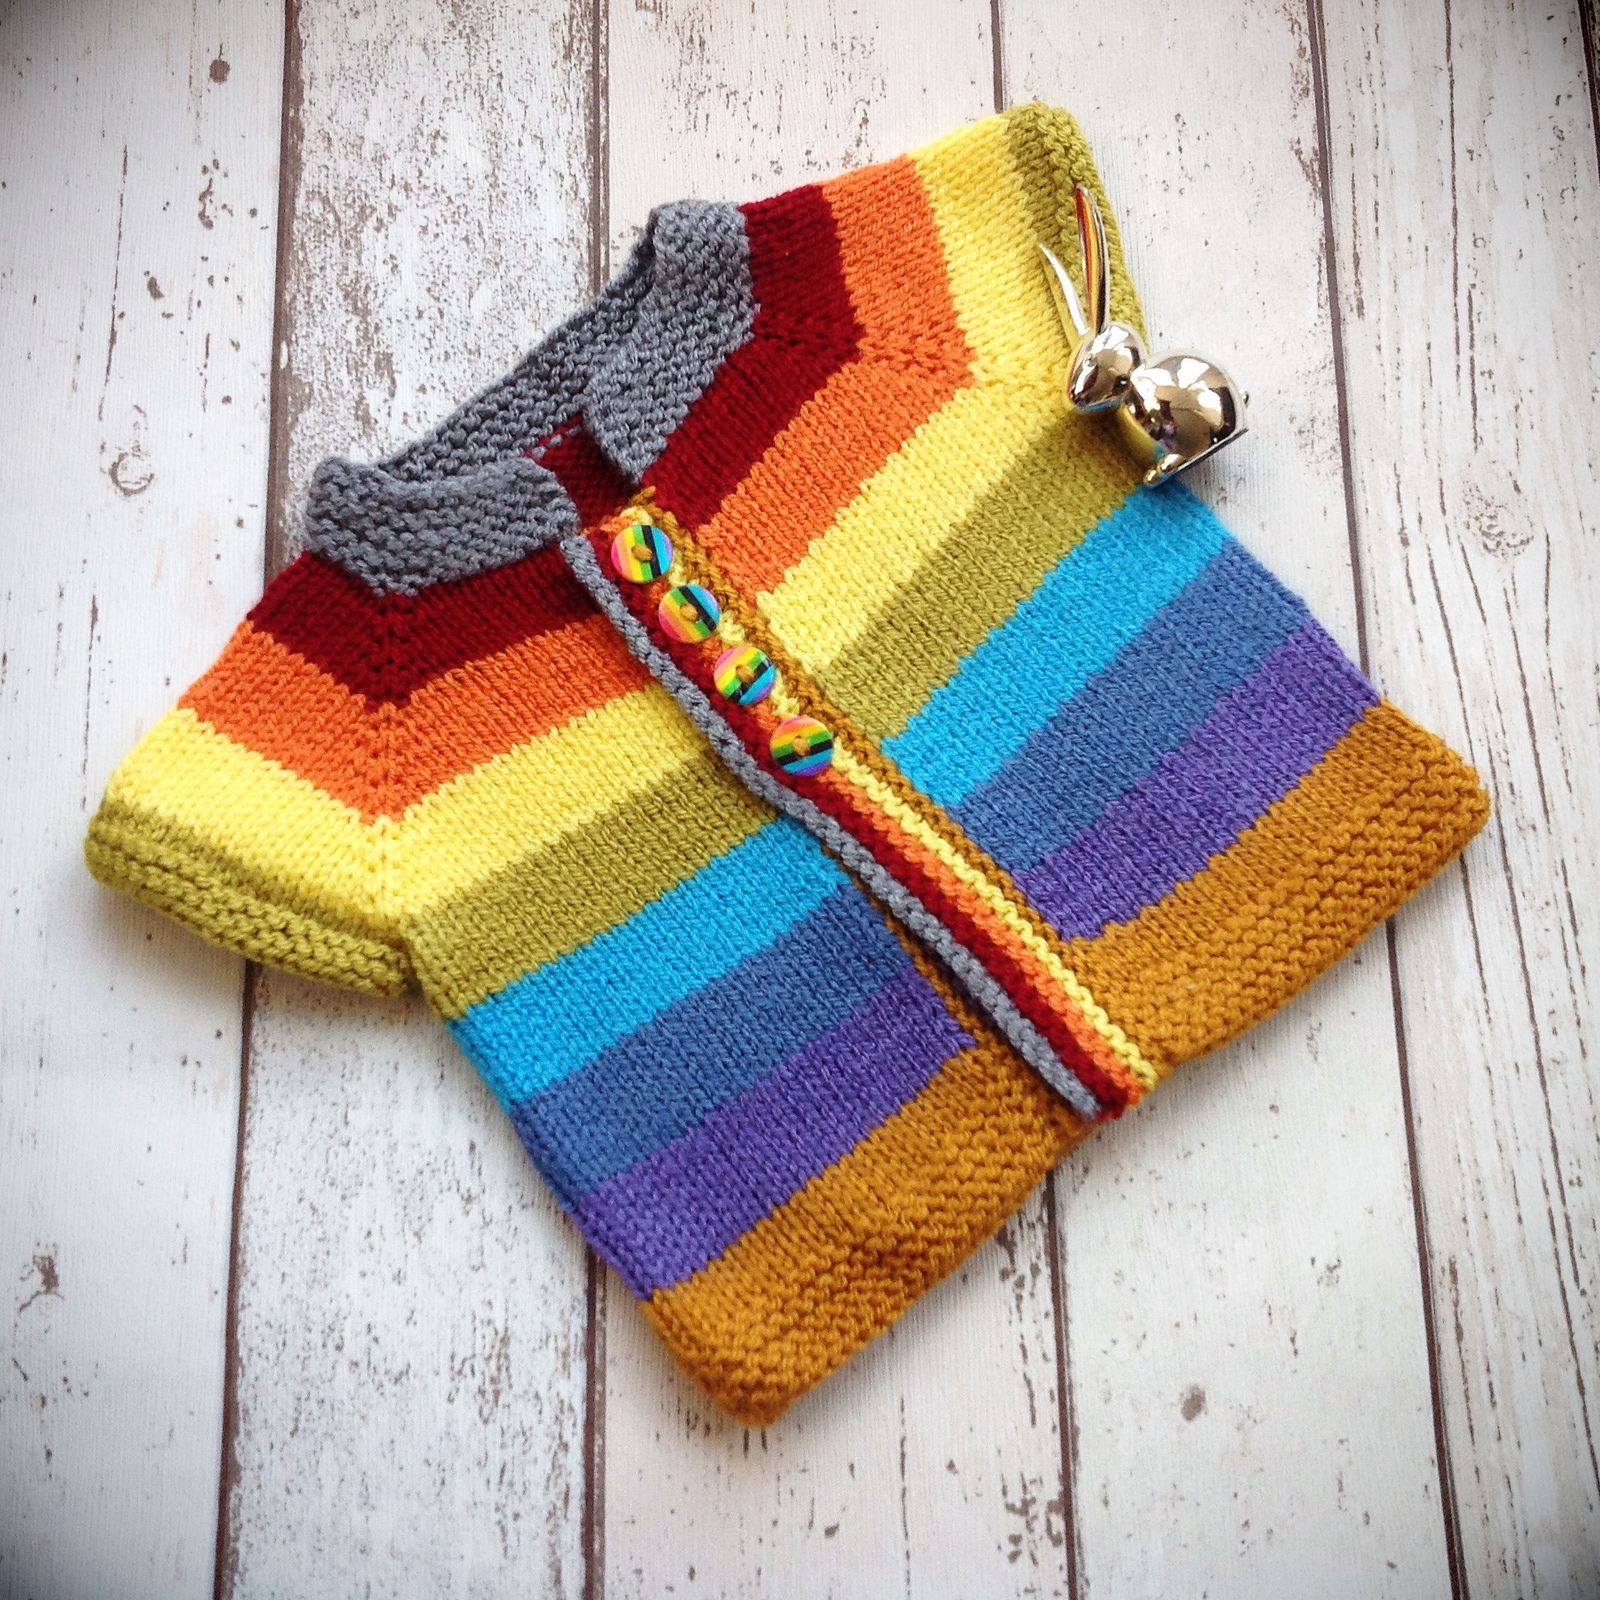 Ravelry: Fuss Free Baby cardigan by Louise Tilbrook | Knitting ...